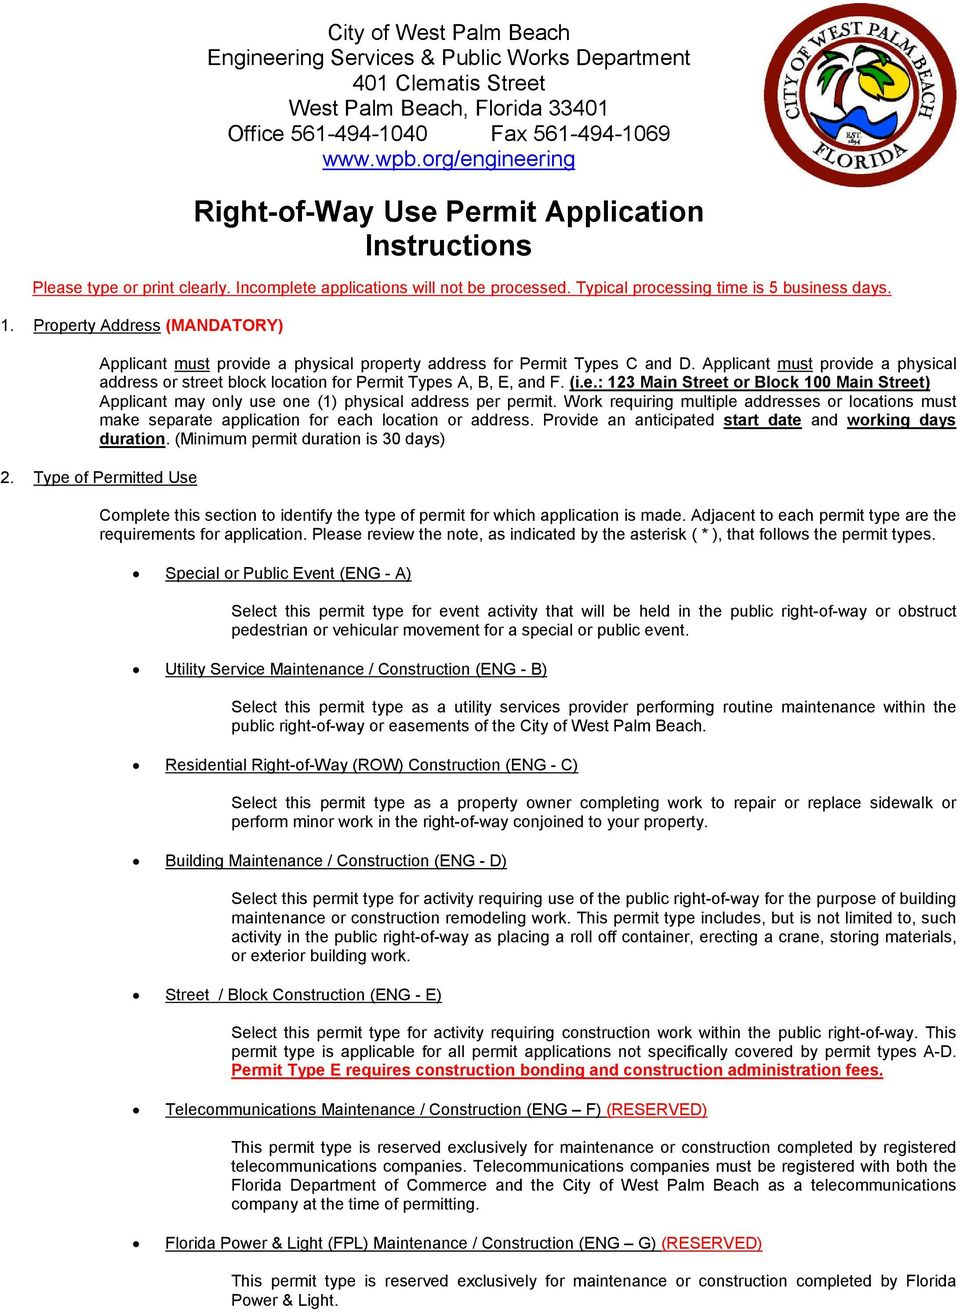 Applicant must provide a physical address or street block location for Permit Types A, B, E, and F. (i.e.: 123 Main Street or Block 100 Main Street) Applicant may only use one (1) physical address per permit.